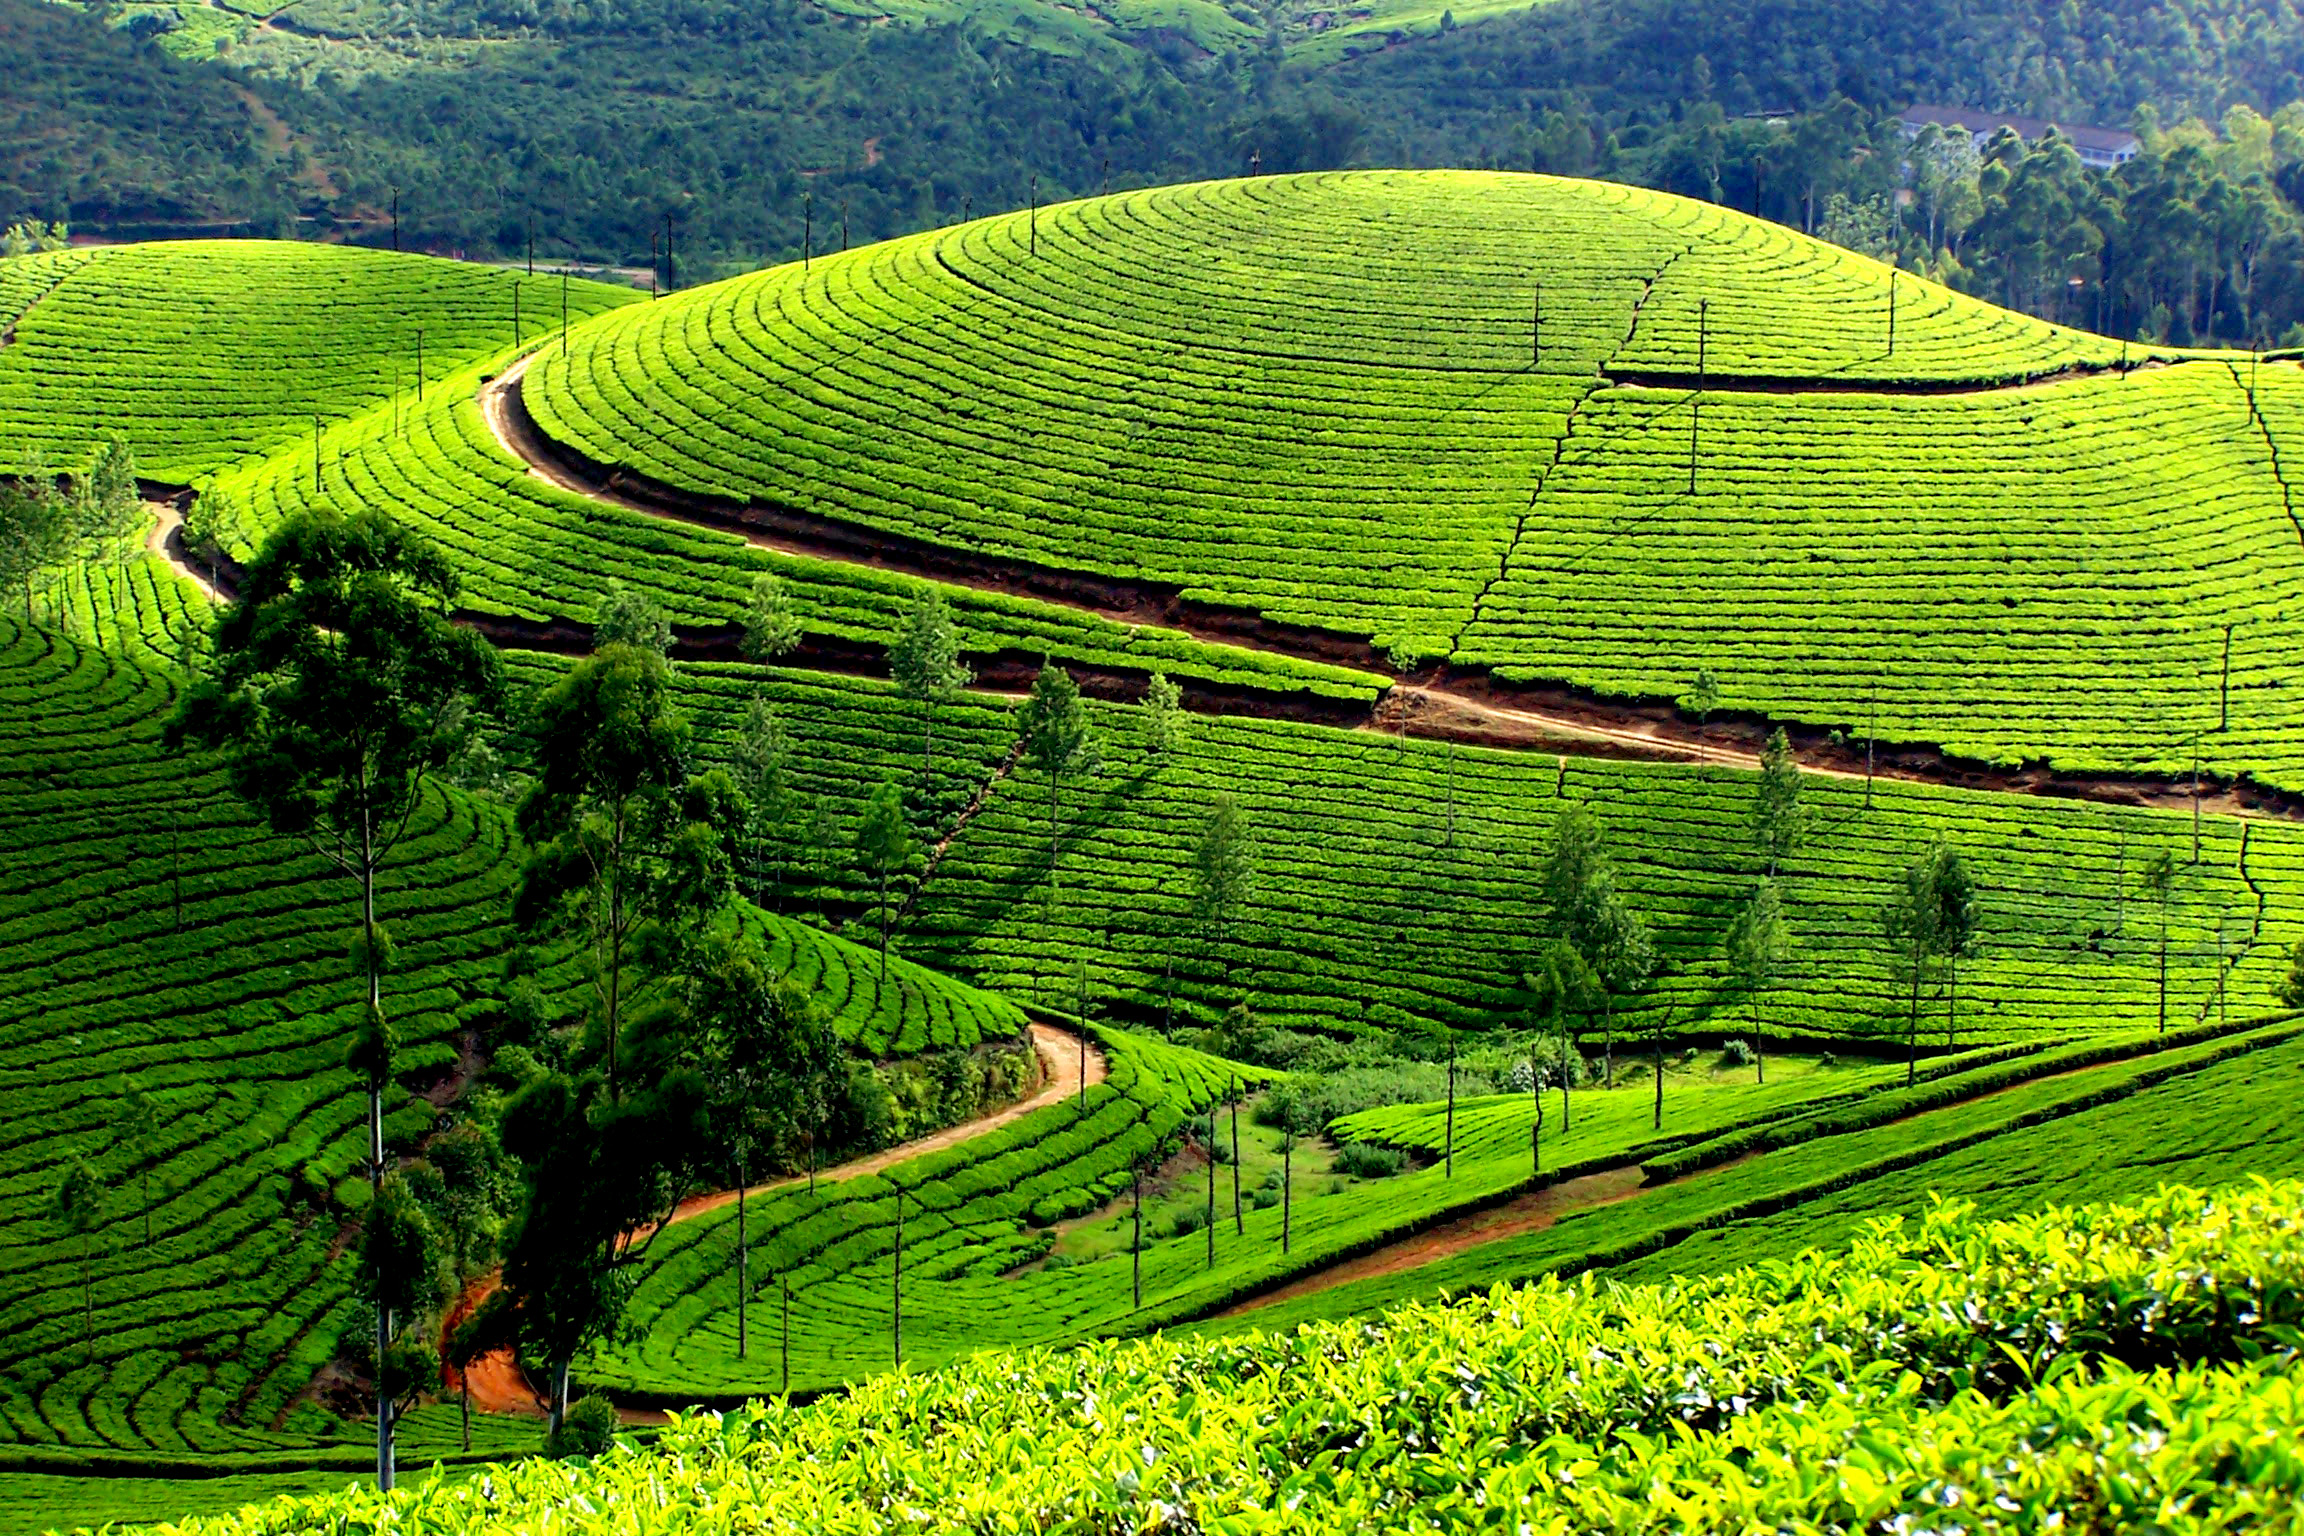 File:Munnar66.jpg - Wikimedia Commons